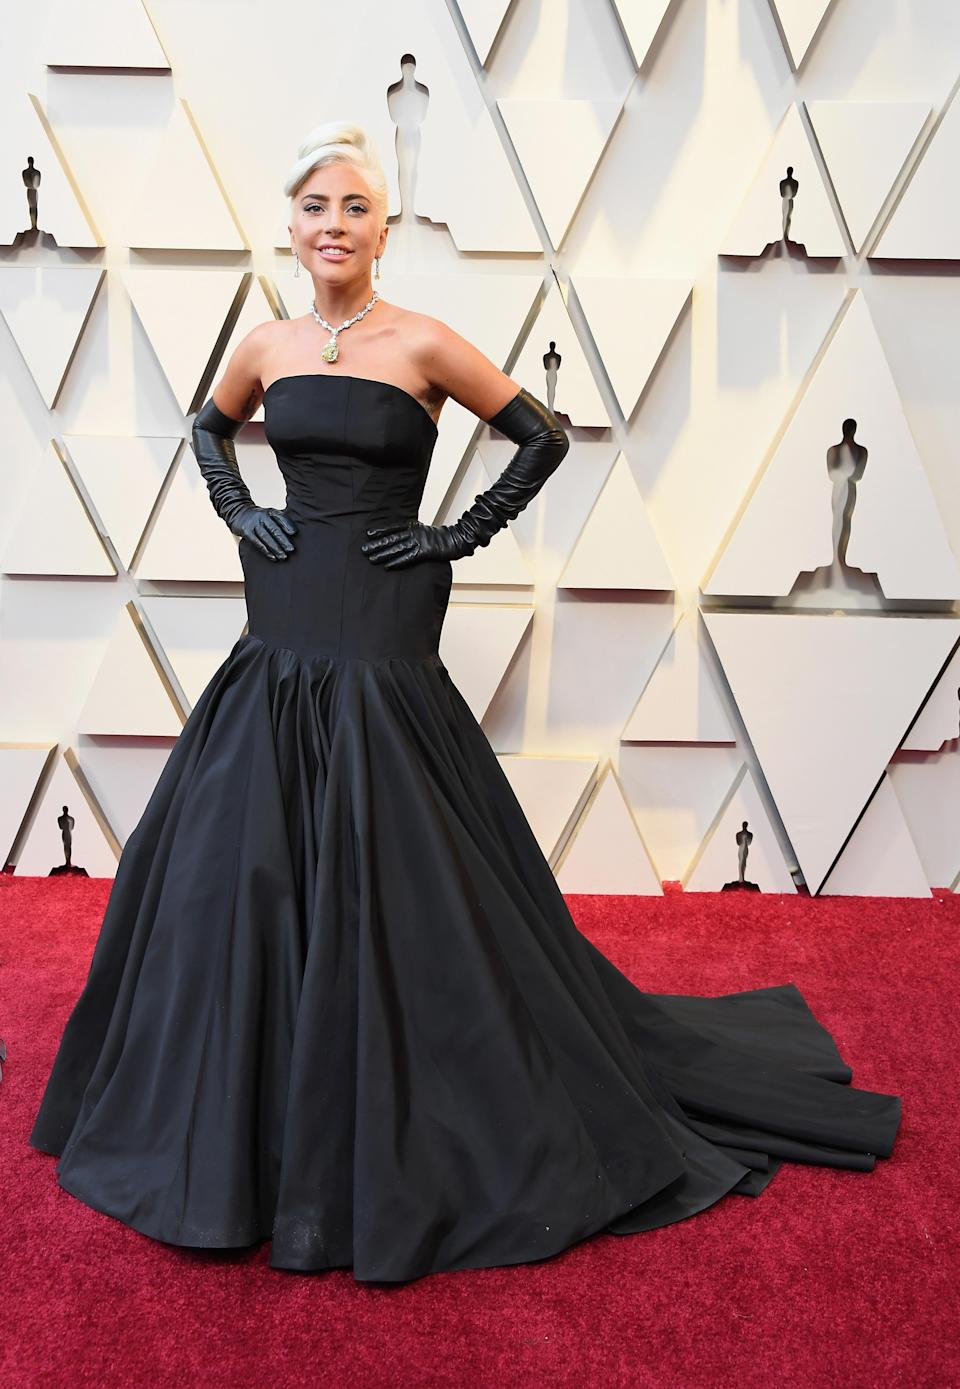 """<p>Lady Gaga capped-off awards season with her most glamorous look yet. The """"A Star is Born"""" actress wore a strapless gown with a structured hip detail by Alexander McQueen. The best actress nominee added extra glamour to her look by wearing a 128 carat cushion cut diamond necklace worth a reported $50 million from Tiffany & Co. The showstopping piece was last worn by Audrey Hepburn in the iconic film, """"Breakfast at Tiffany's.""""<br>While some praised the singer for her homage to Audrey Hepburn, some fans had other thoughts.<br>""""Lady Gaga should have won different jewelry- it just looks wrong with the gloves,"""" one critical fan wrote.<br>Cristian Sirano, a designer and correspondent for E! News put it best when he explained, """"The gloves make it Gaga.""""<br>(Image via Getty Images) </p>"""